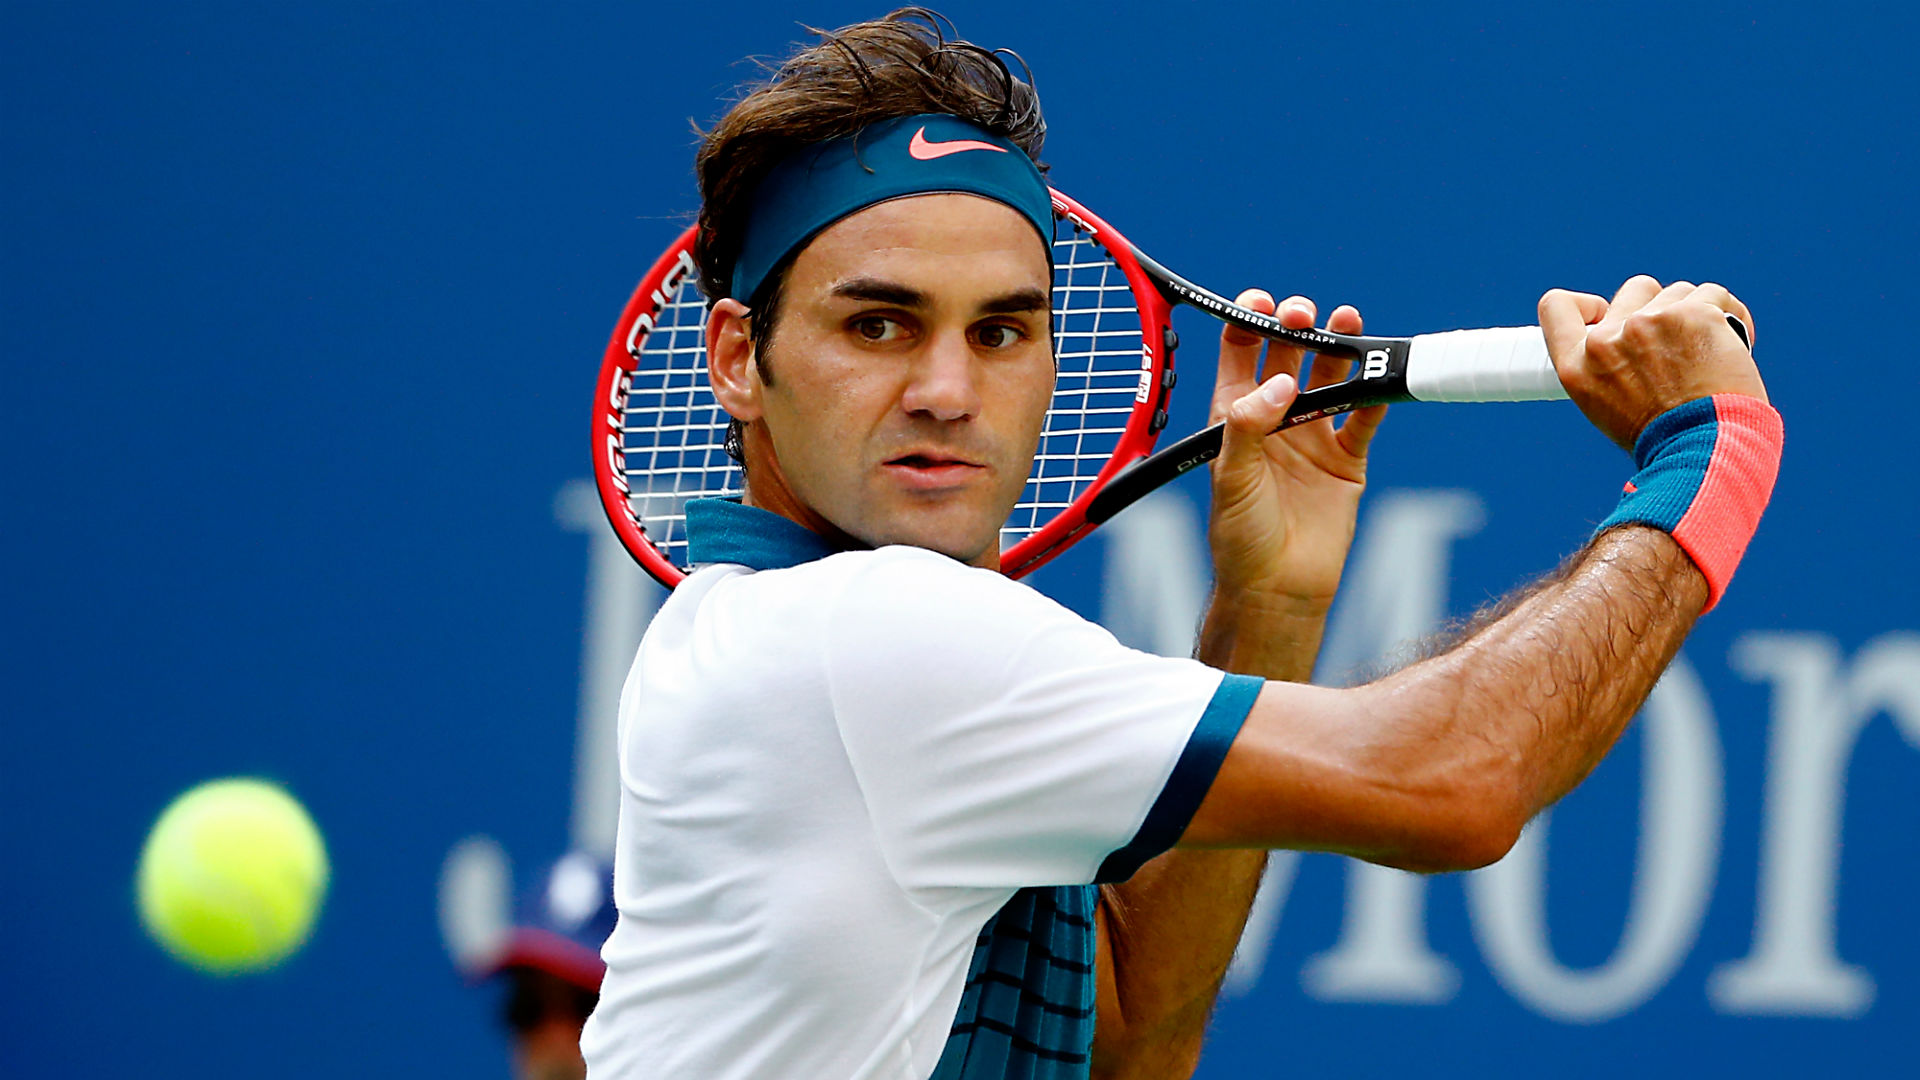 US Open: I didn't deserve to win – Federer